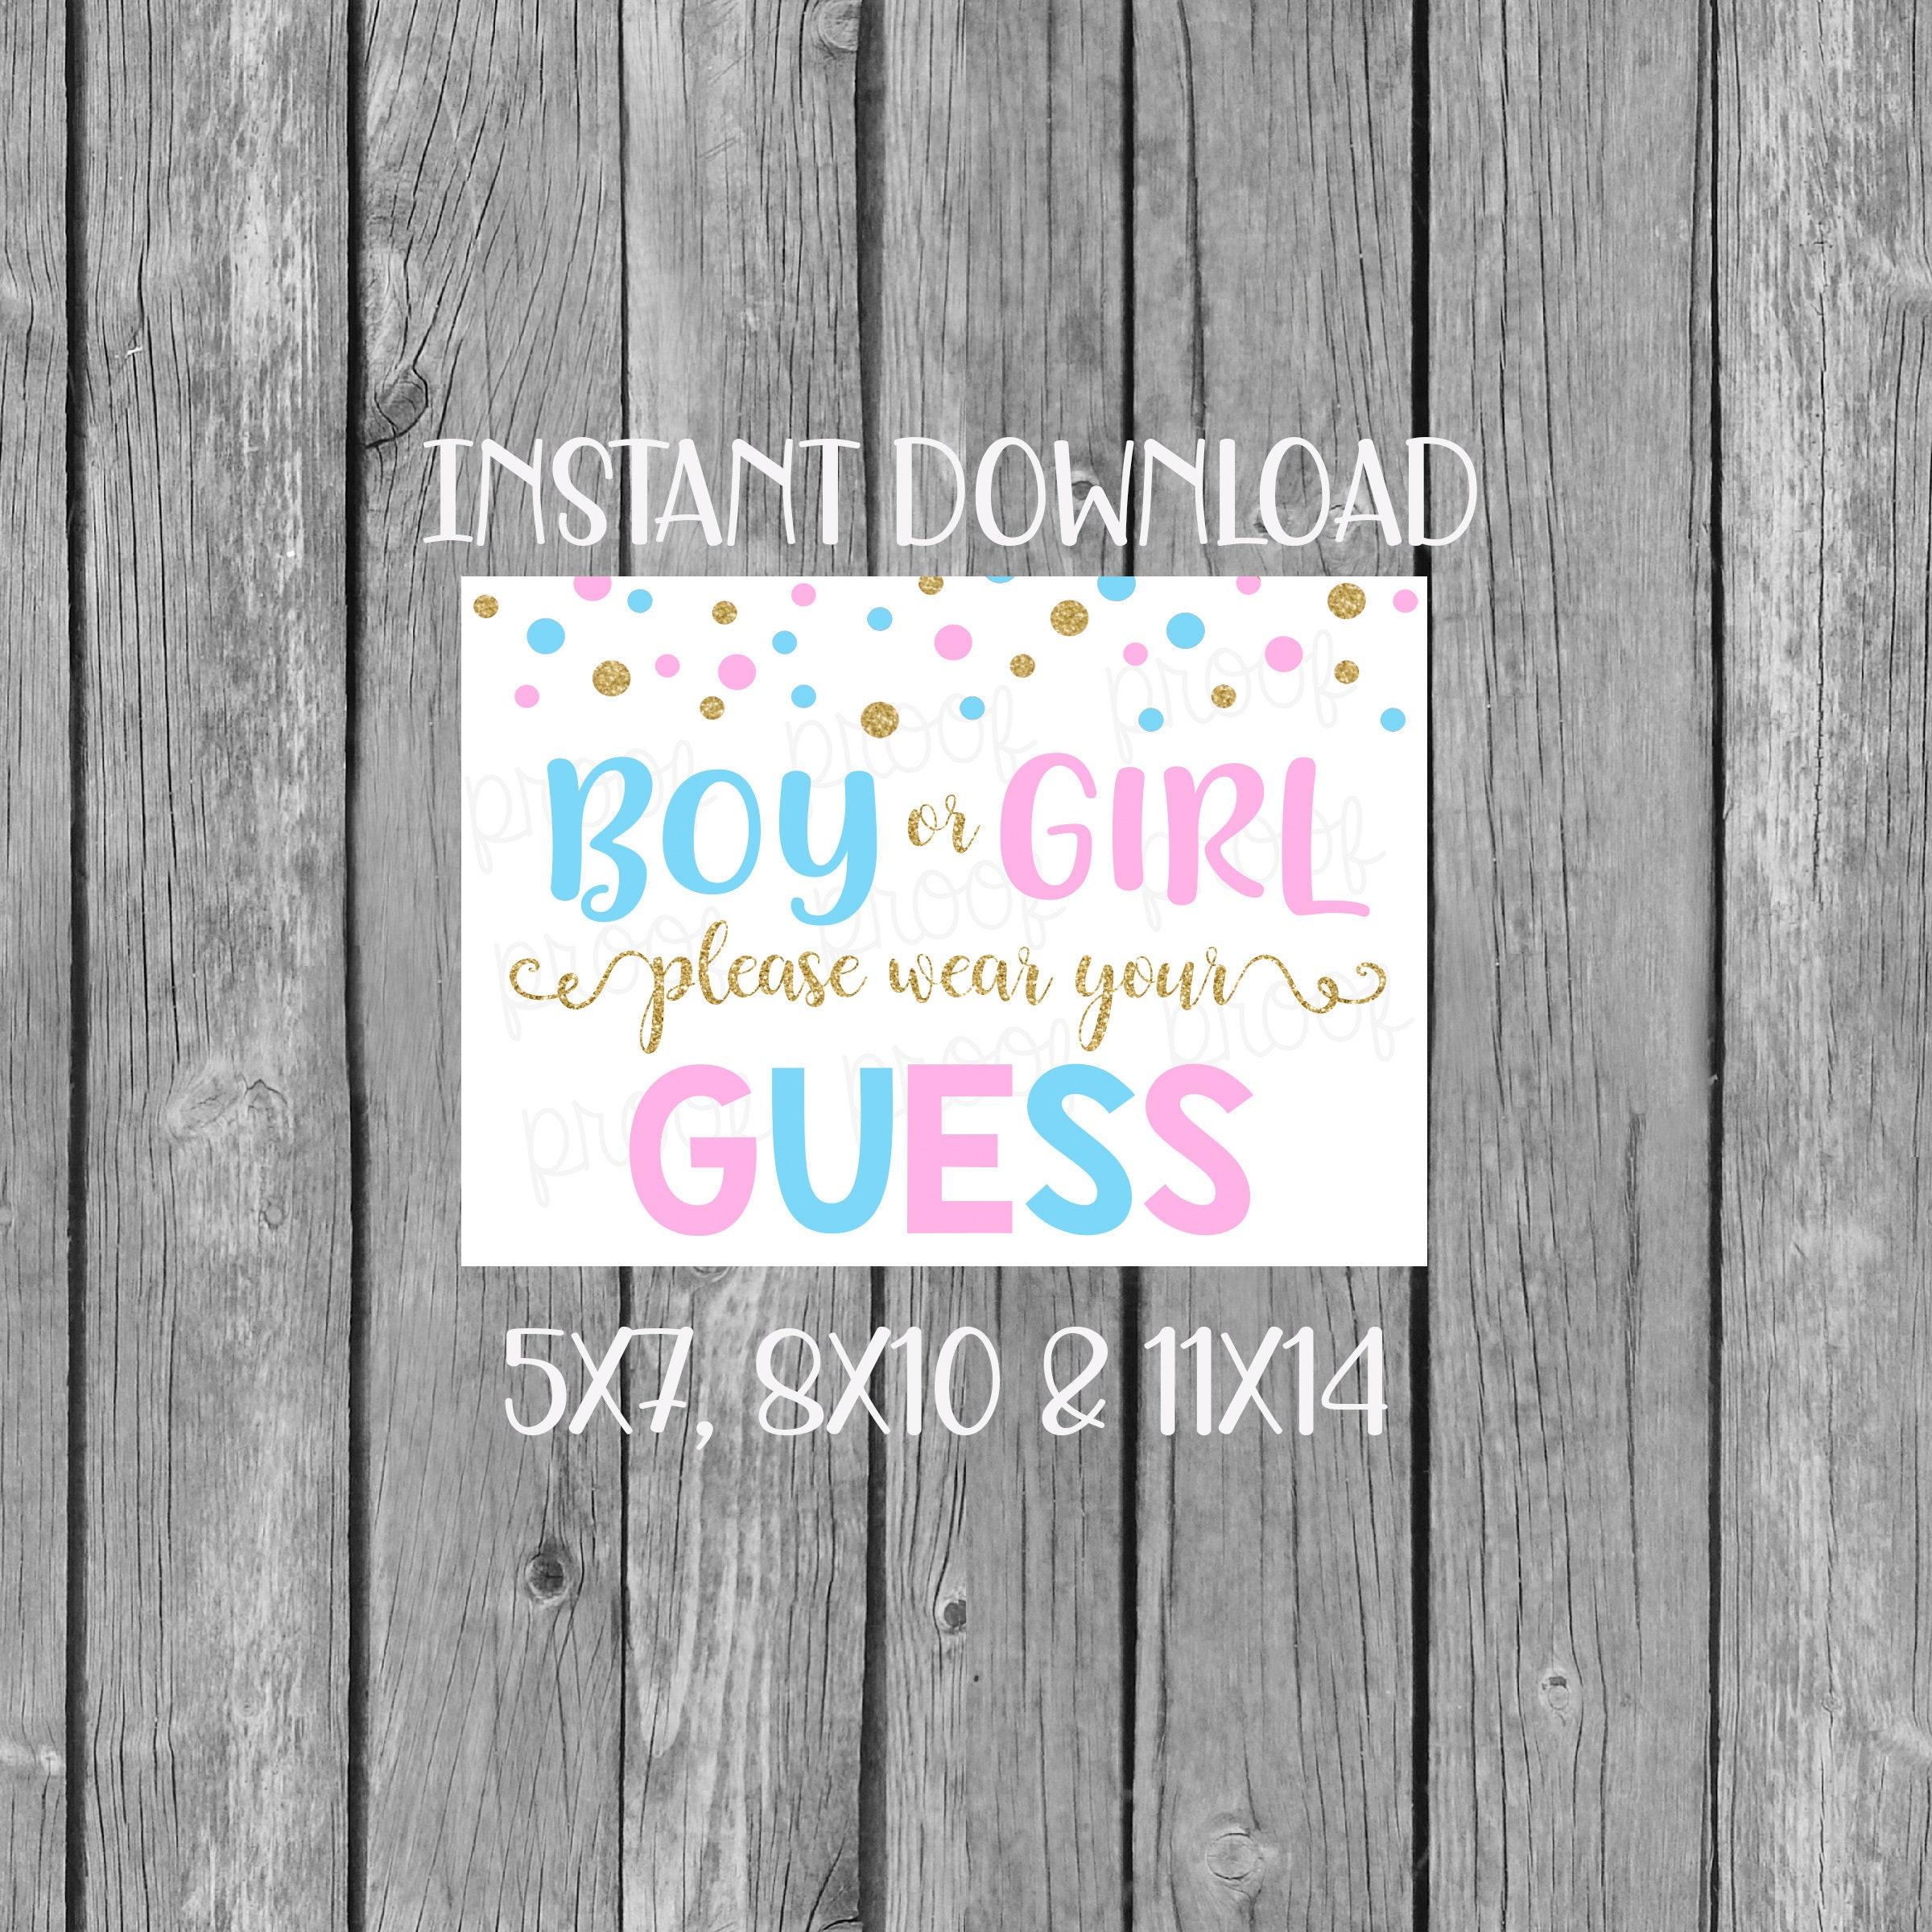 Gender Reveal Decorations Instant Download Wear Your Guess Gender Reveal Party He Or She Printable Party Sign 8x10 Jpg Blue Or Pink Wall Hangings Home Living Vadel Com